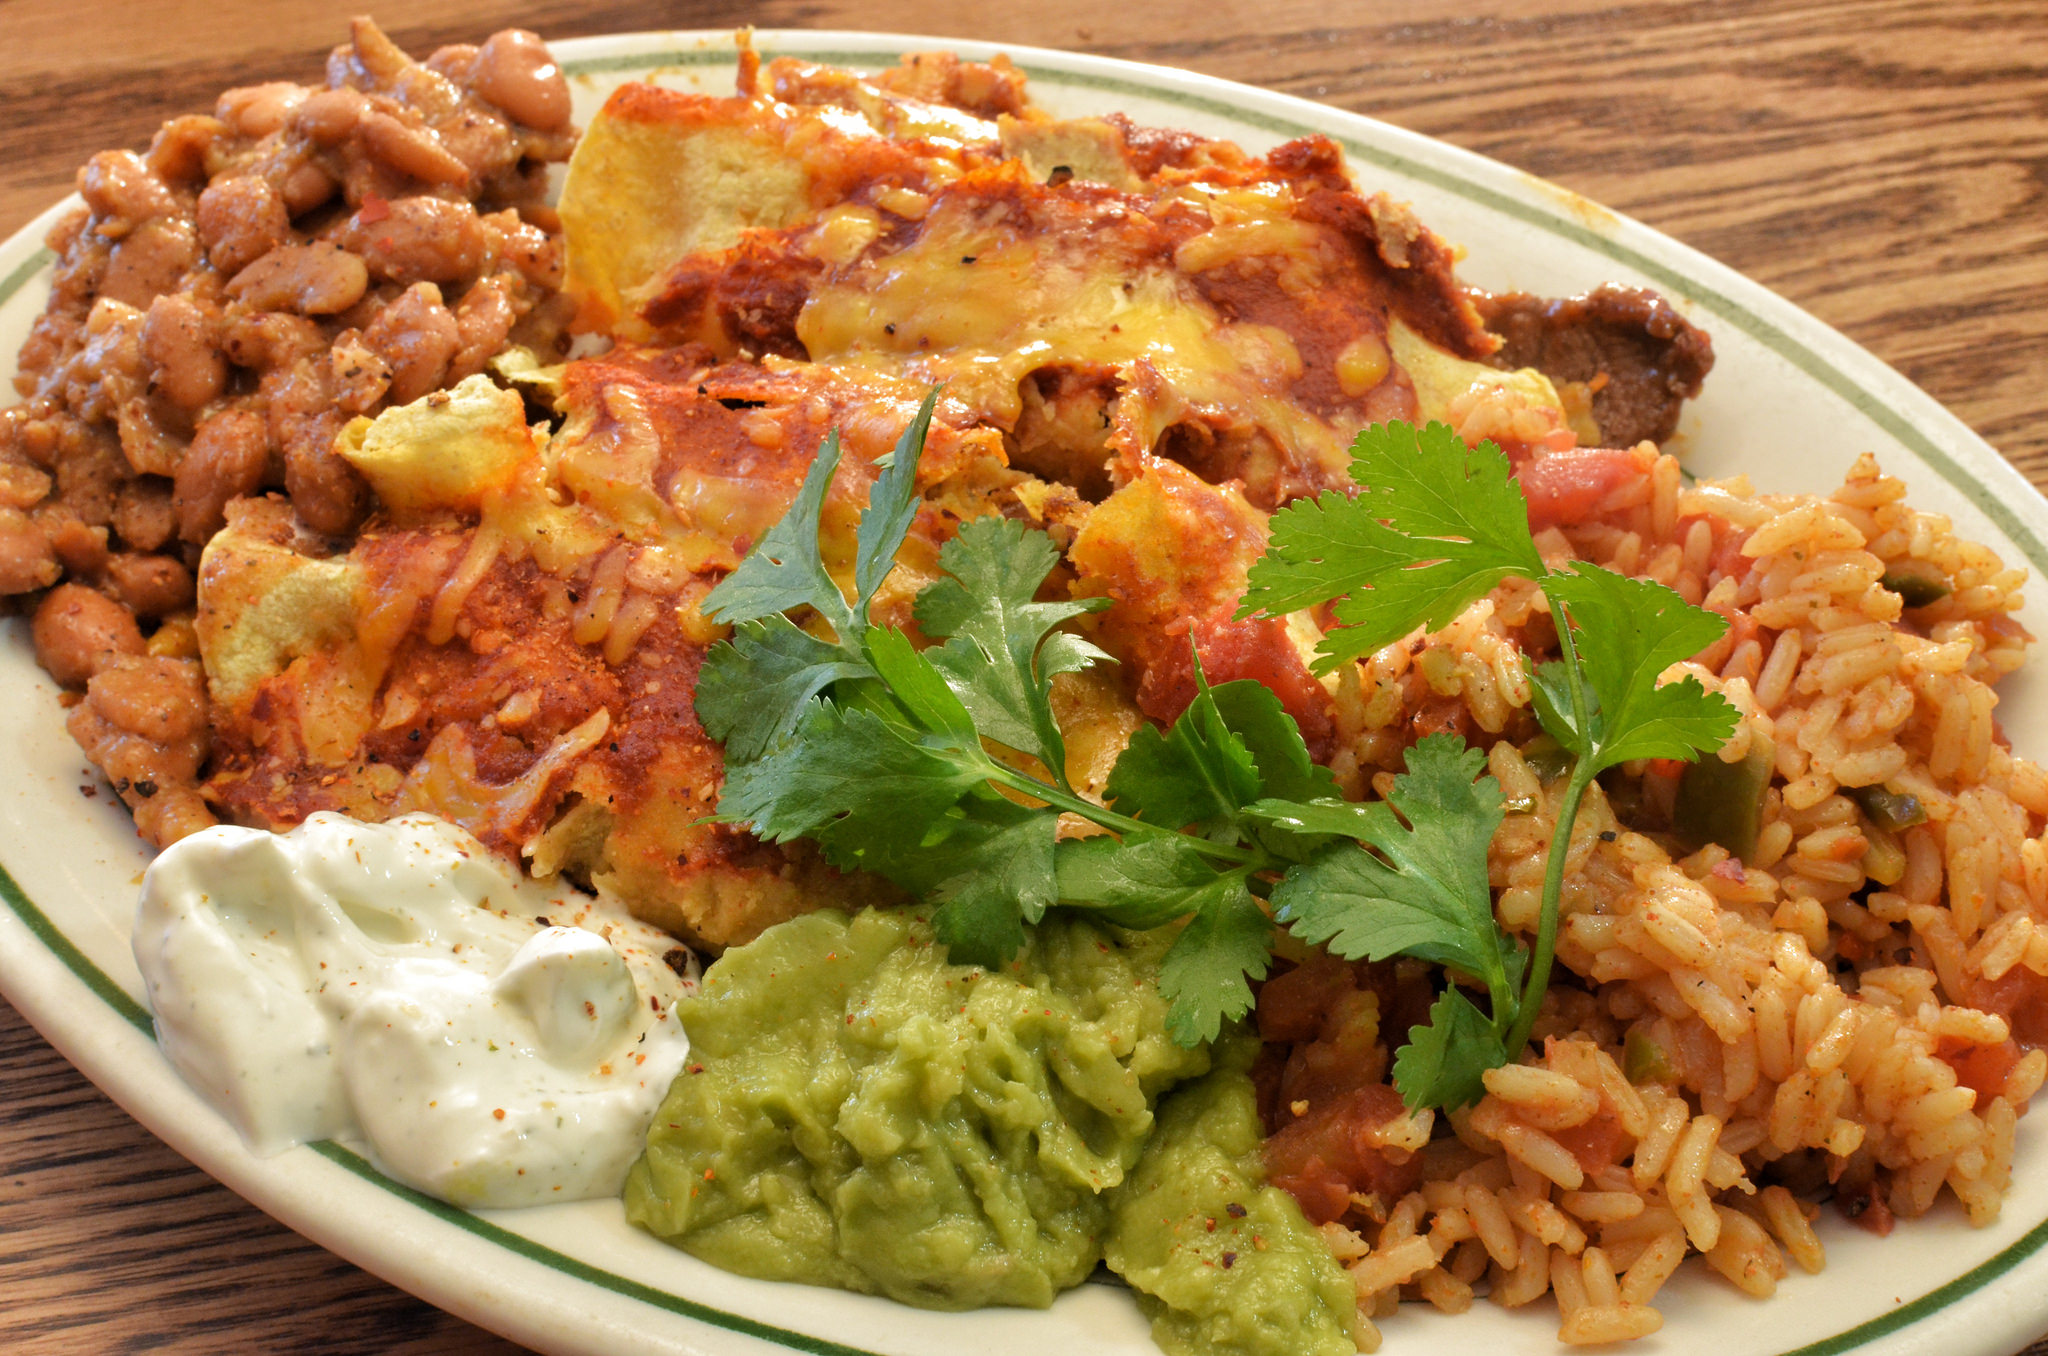 American Food The 50 Greatest Dishes Cnn Travel